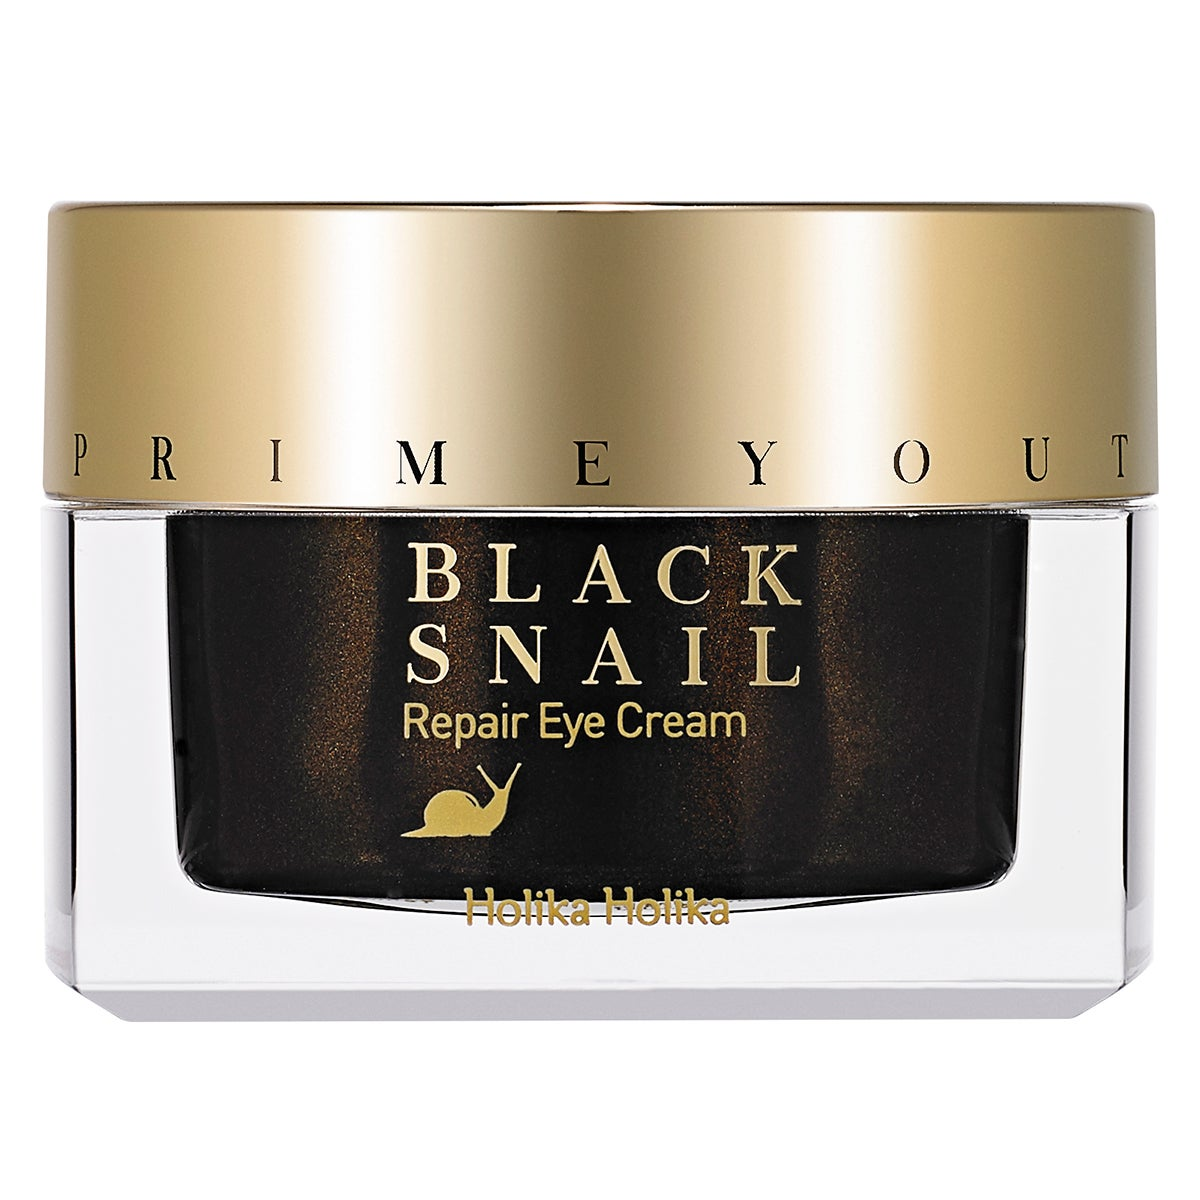 Prime Youth Black Snail Repair Eye Cream, Holika Holika Ögonkräm